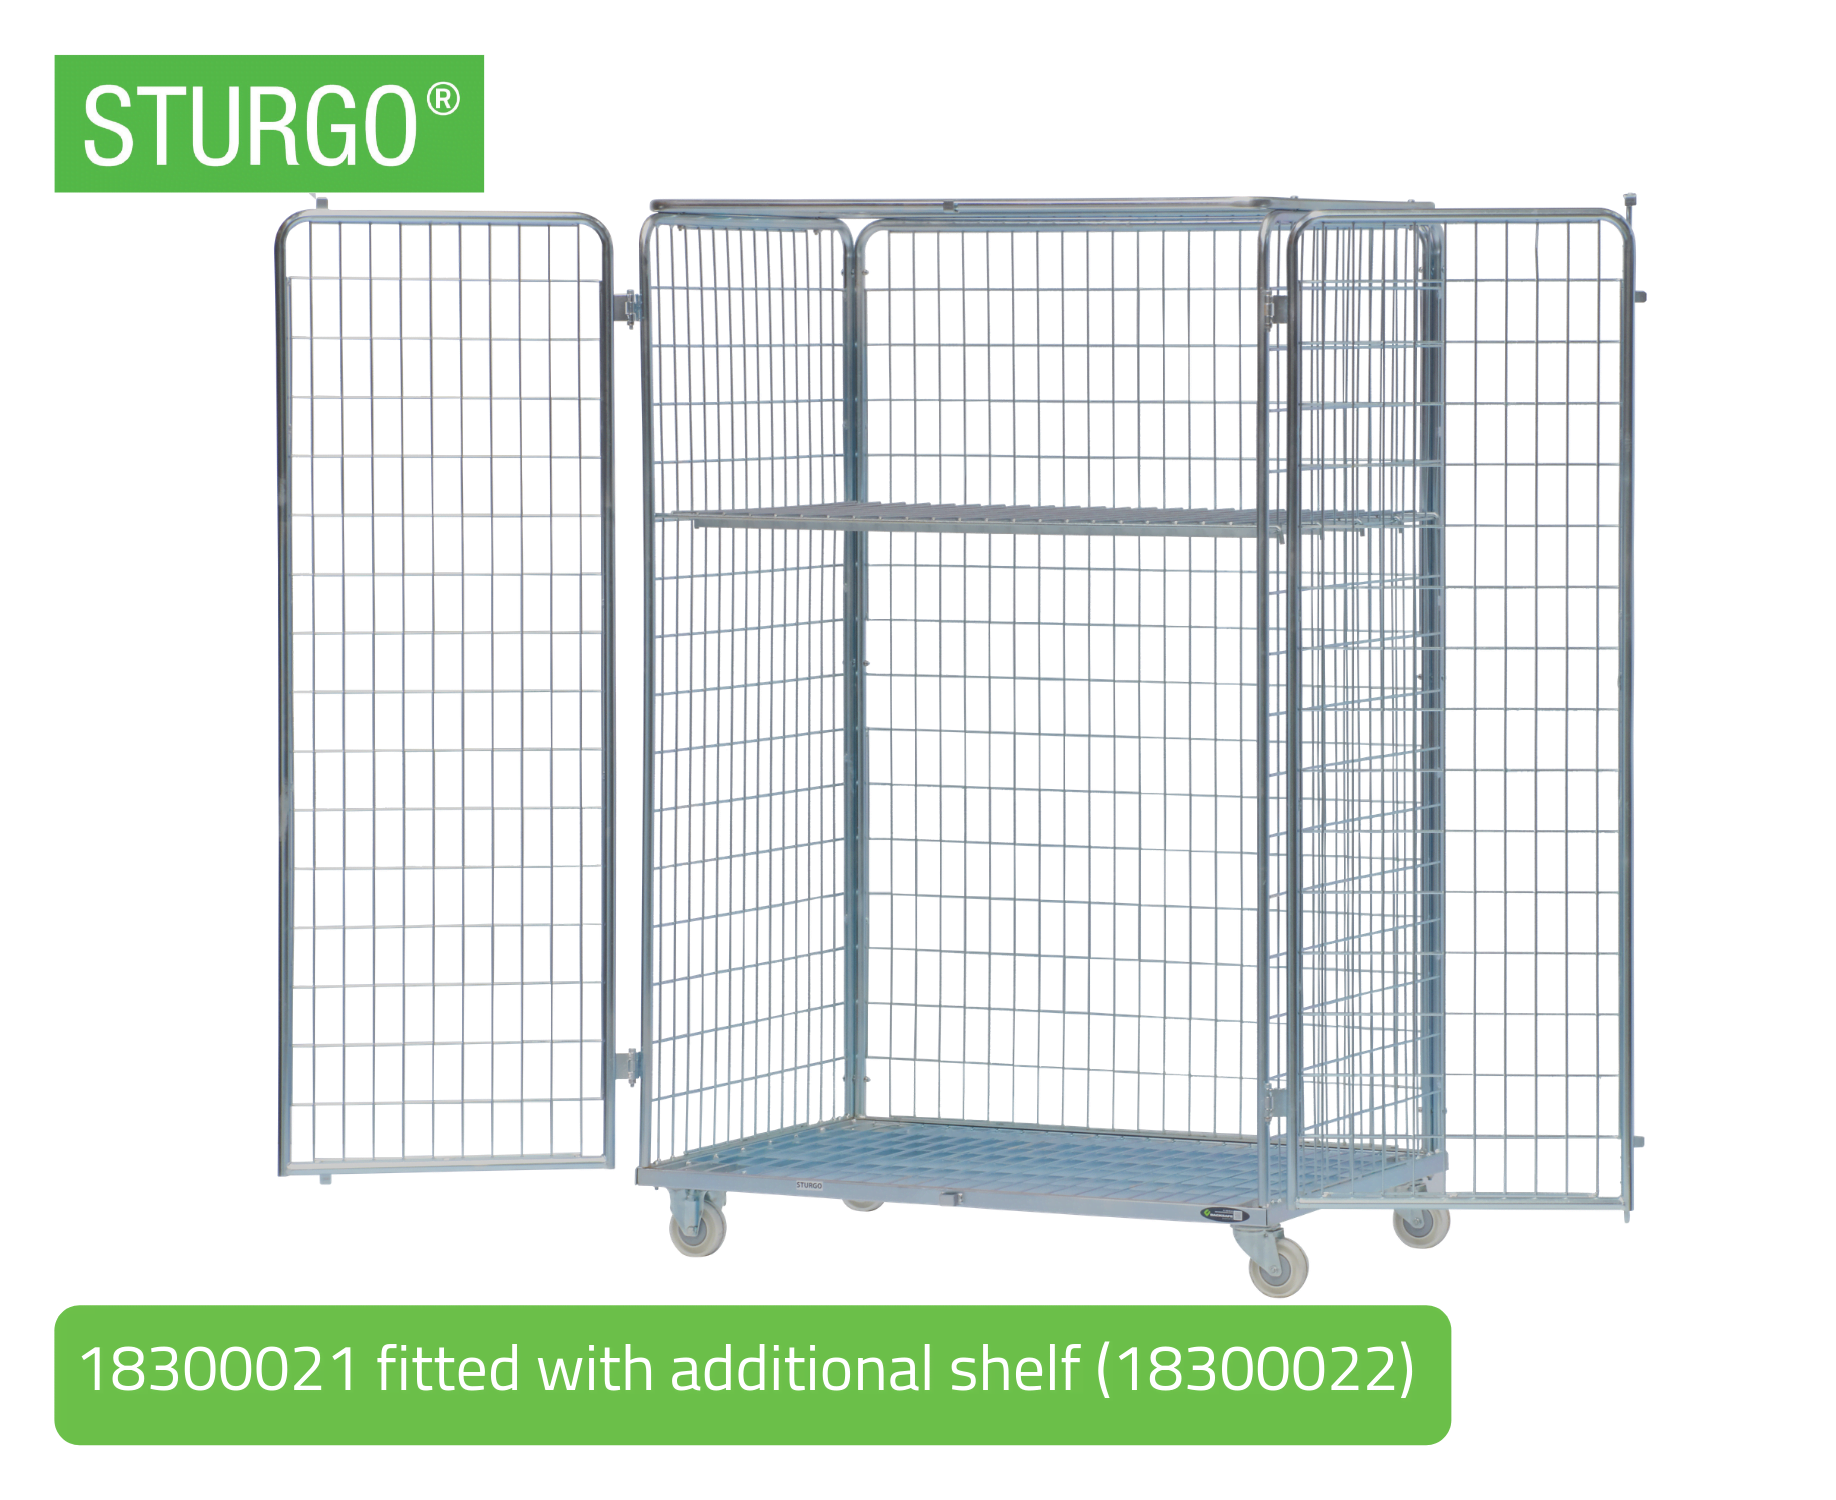 STURGO® Security Double Roll Cage Trolley